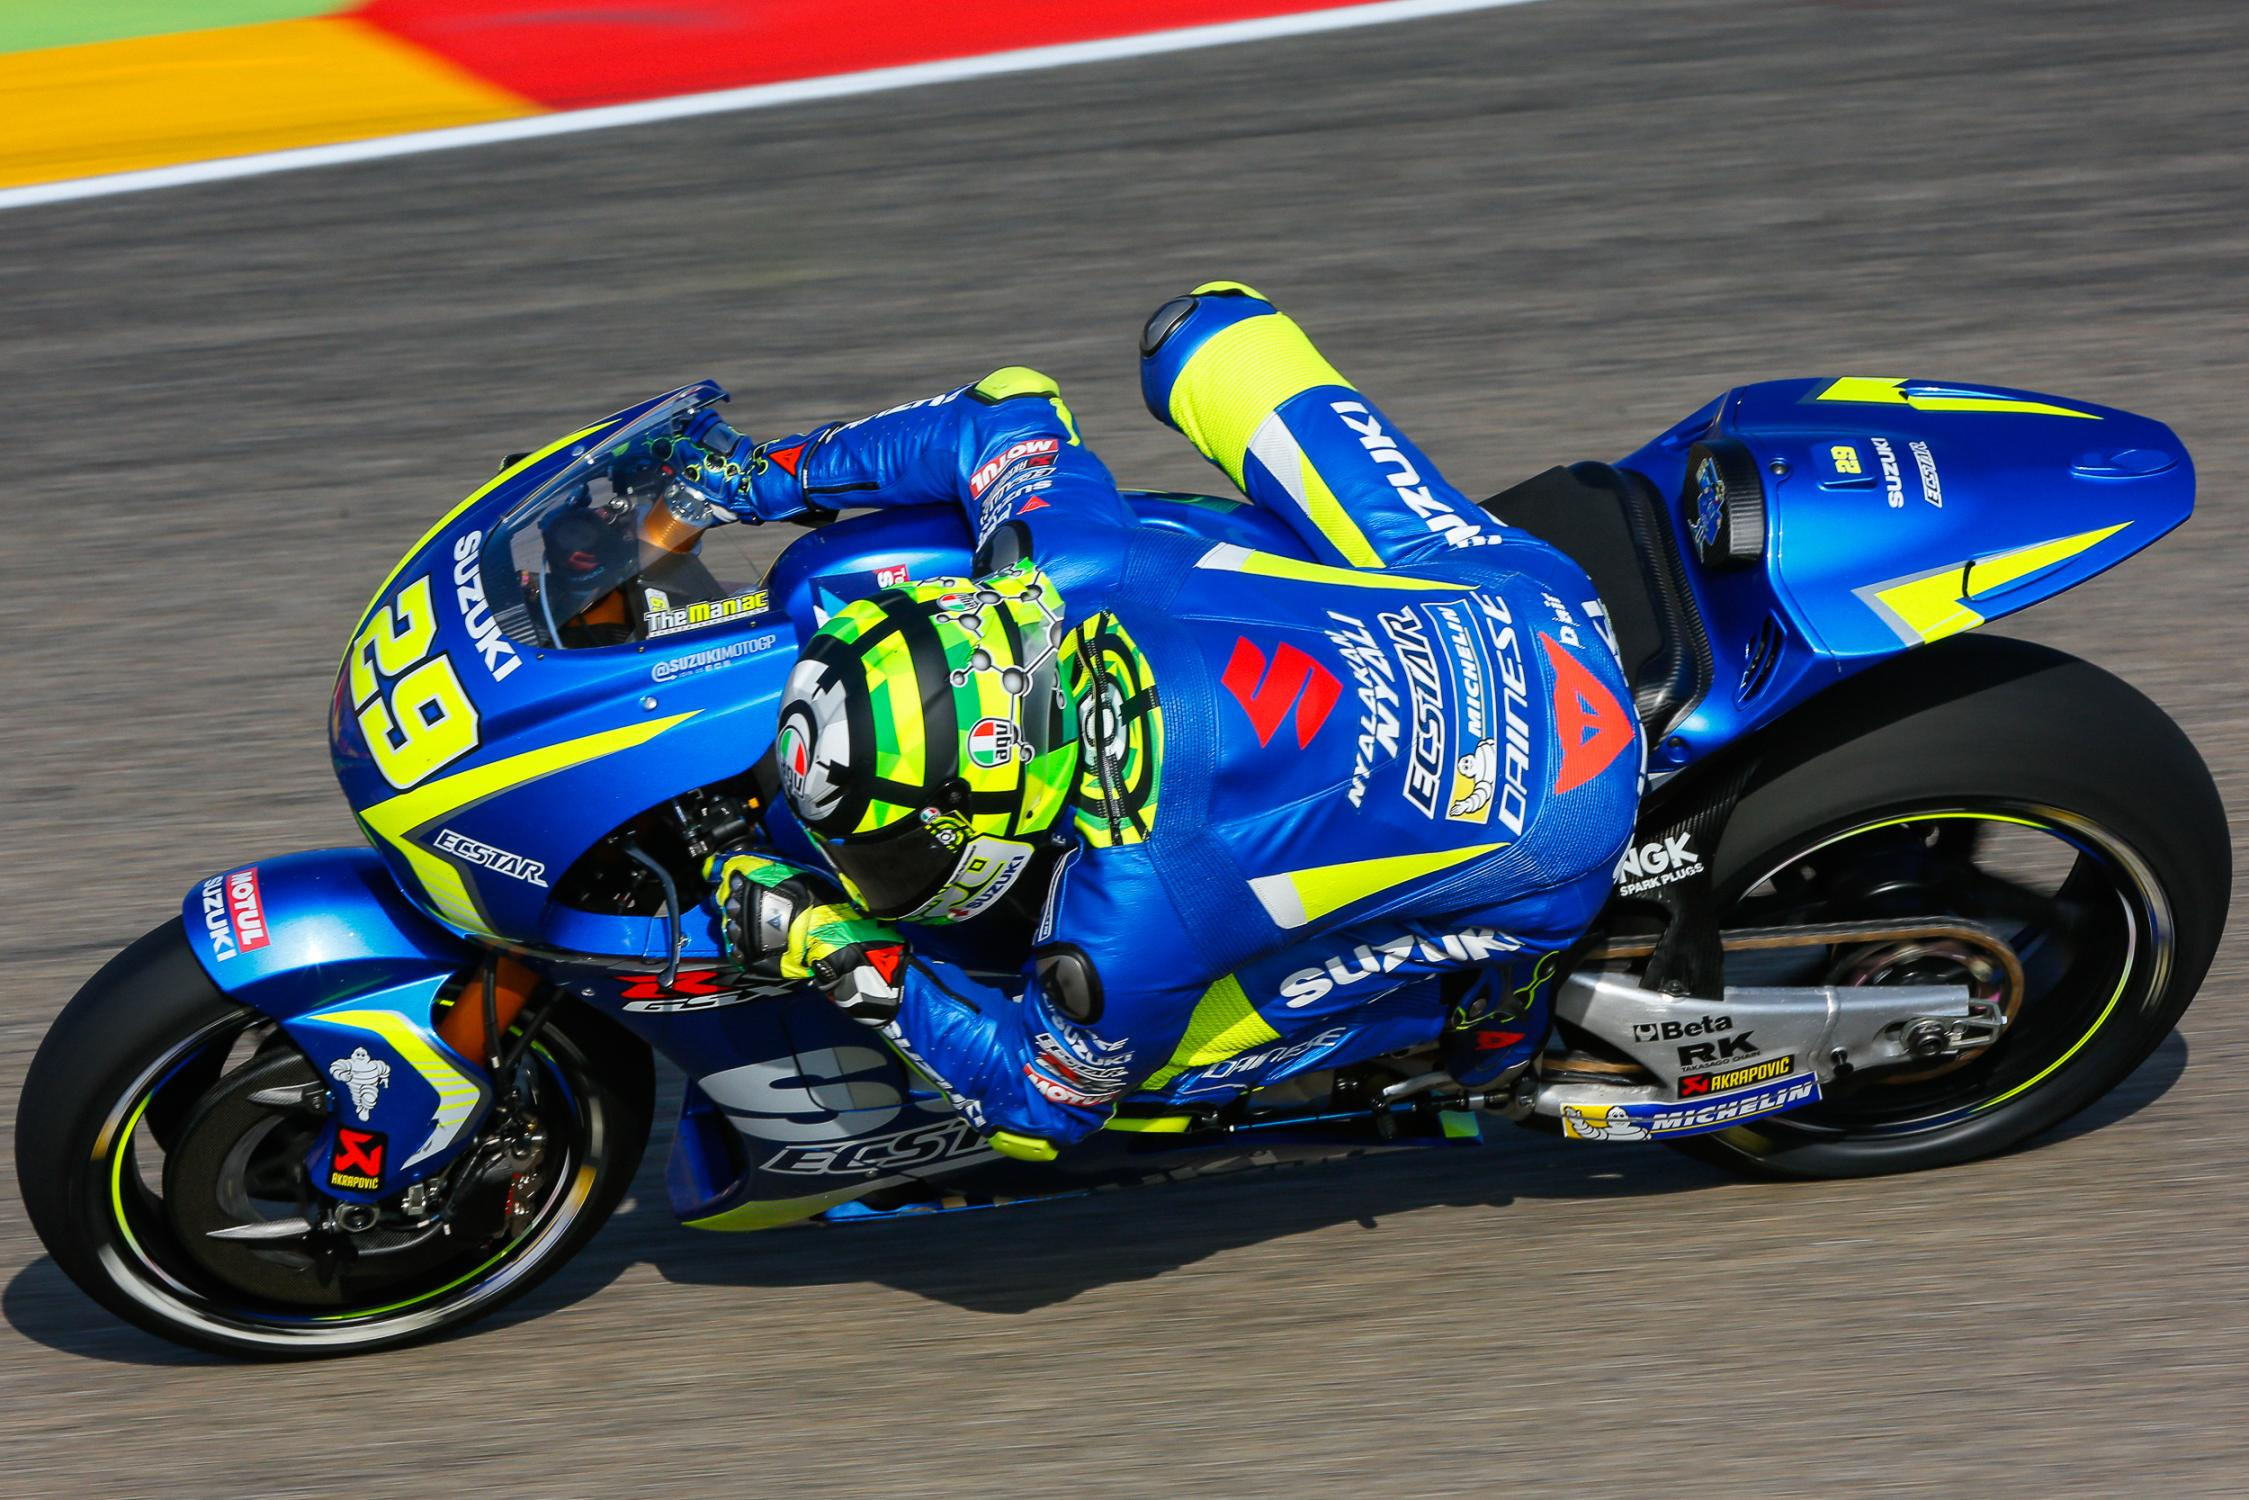 29-andrea-iannone-ita_gp_8200.gallery_full_top_fullscreen.jpg